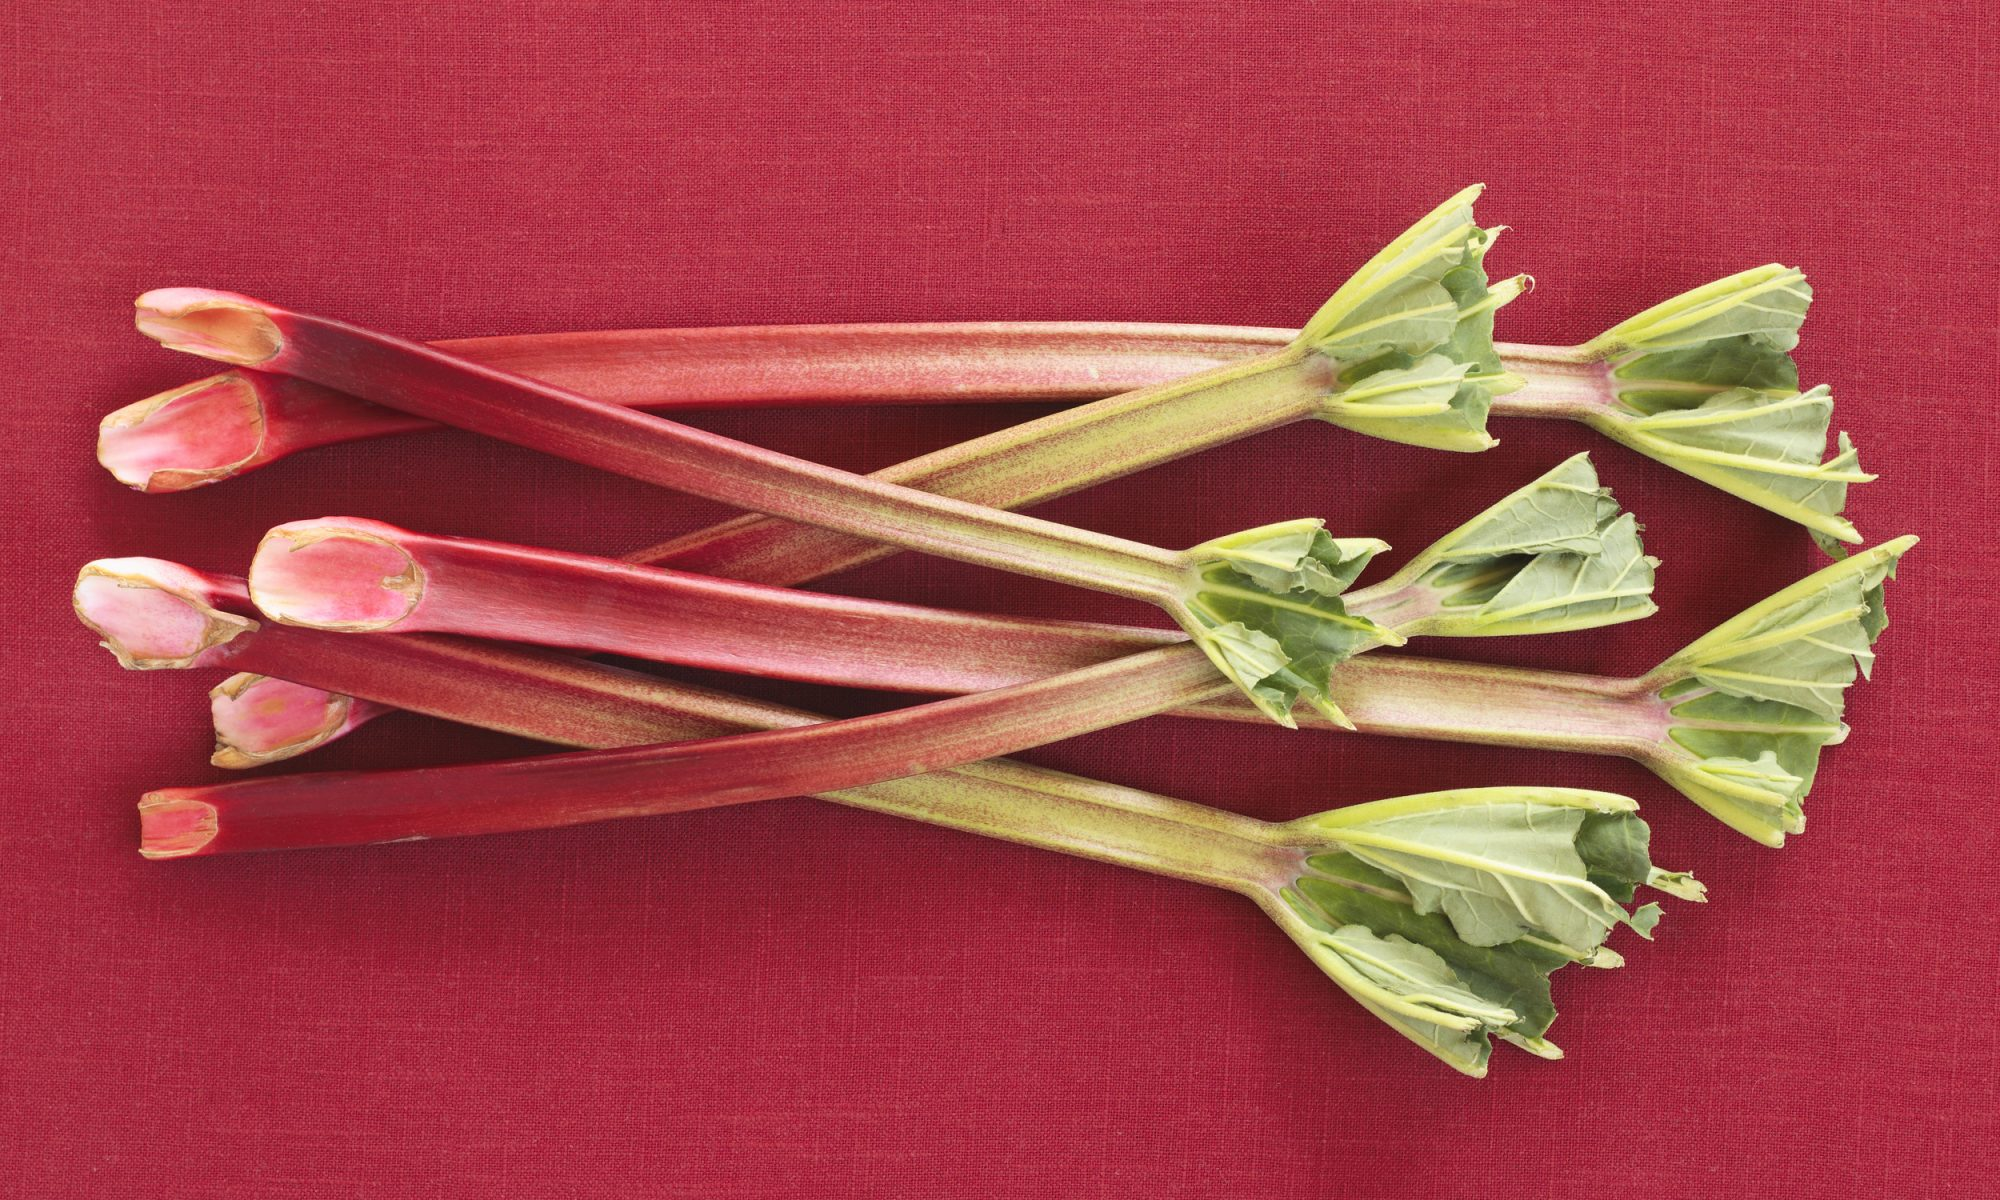 EC: Rhubarb Is the Best Vegetable You Can Eat Right Now